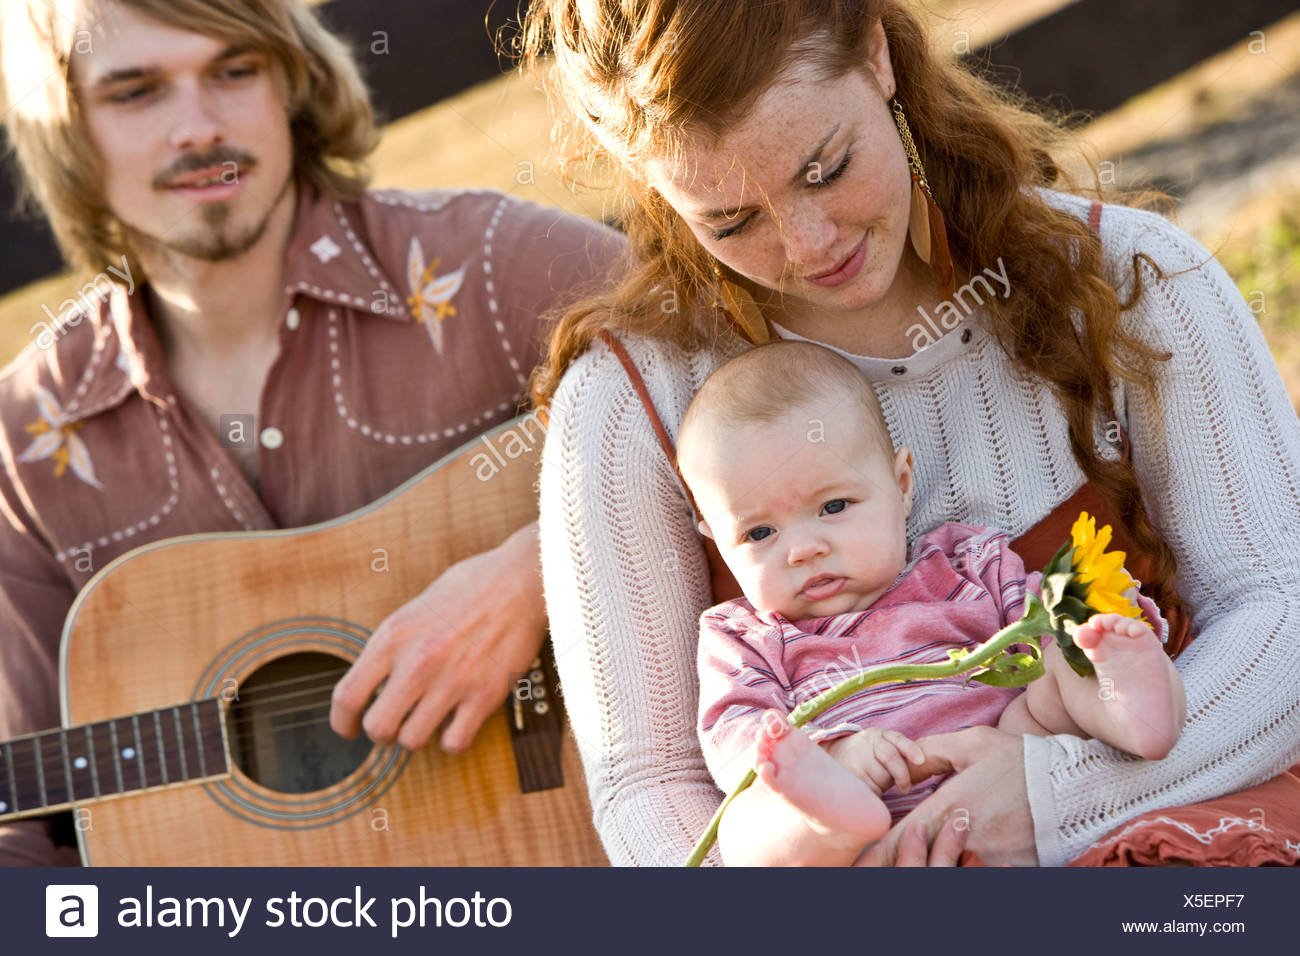 Portrait of young family, 1970s style - Stock Image